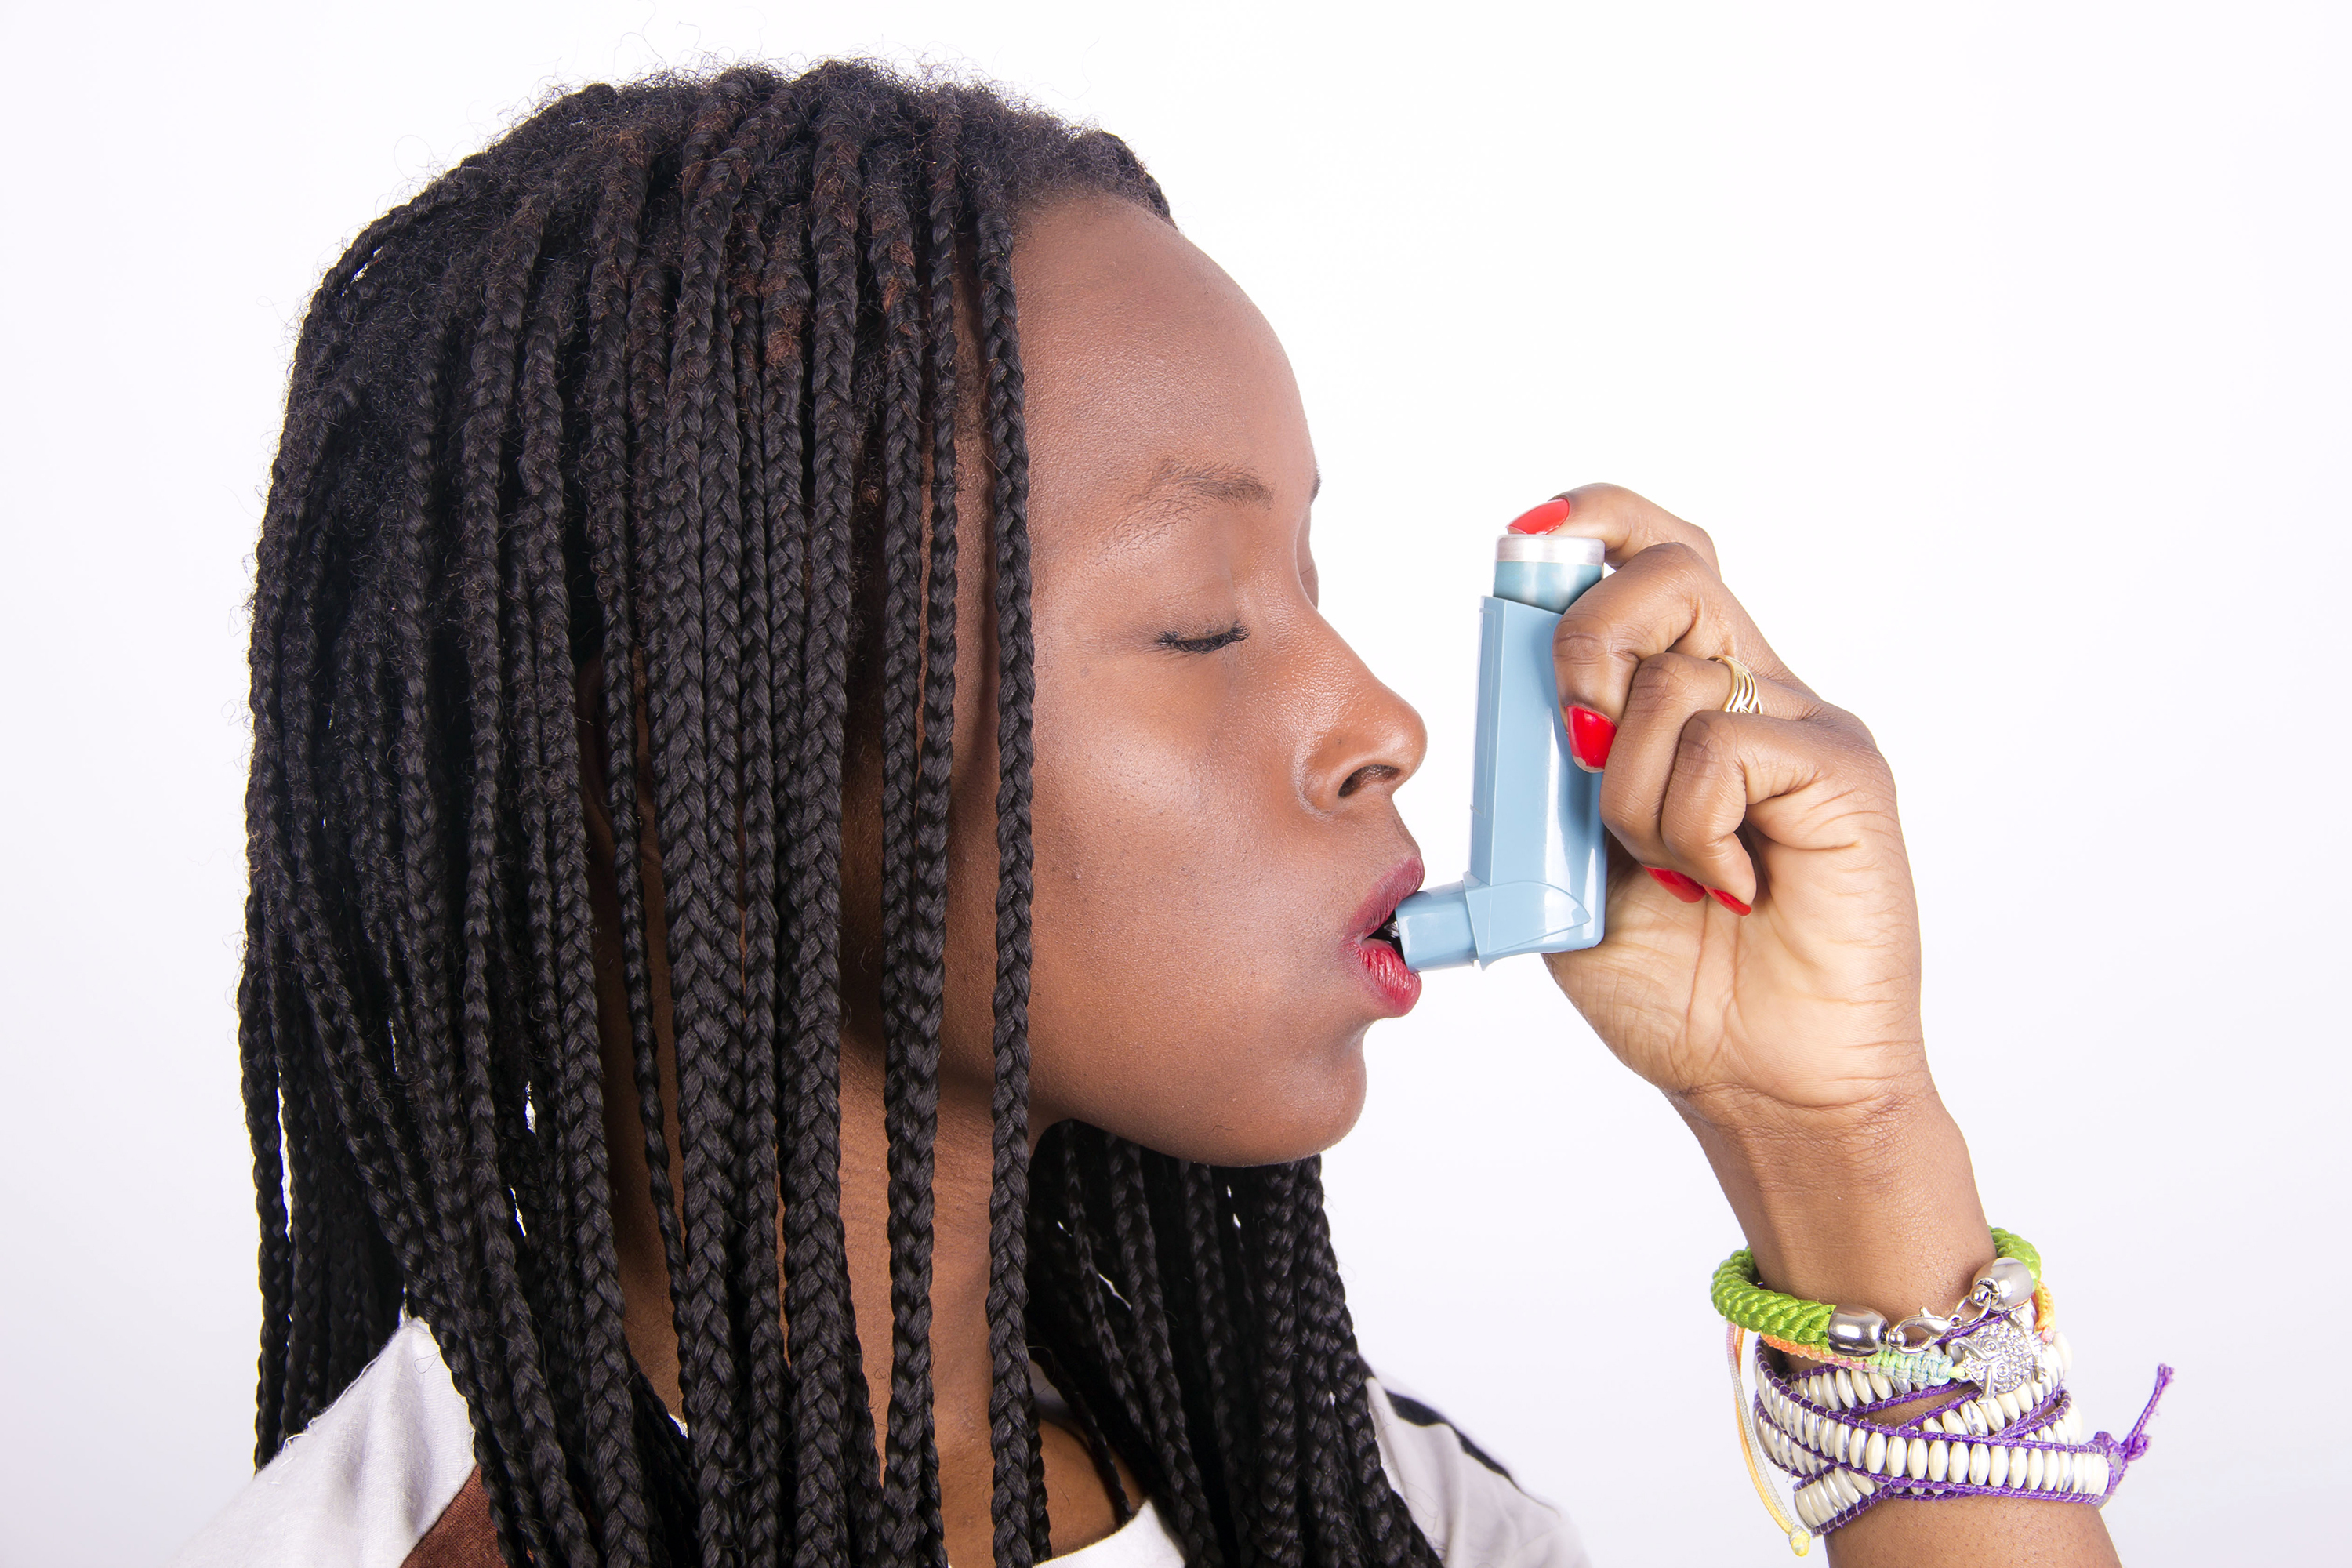 Study of black adults and asthma